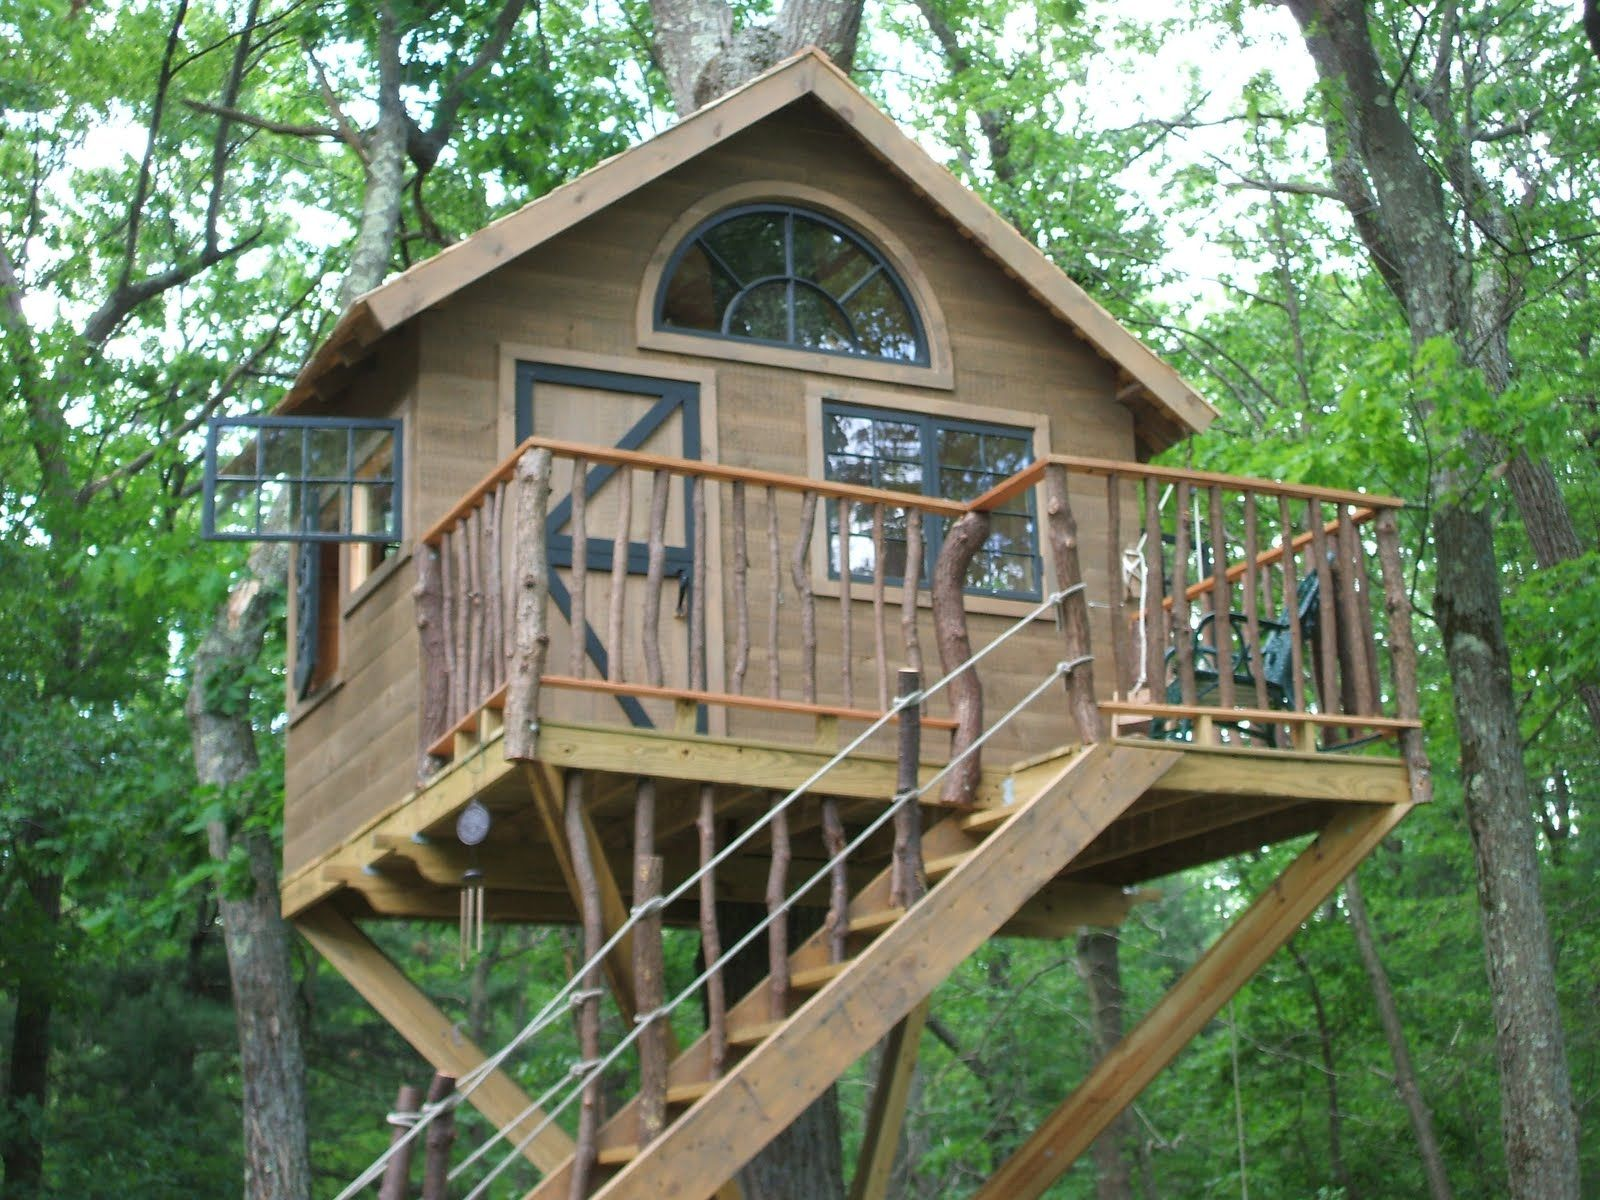 Simple Tree Houses tree houses | pictures of tree houses and play houses from around